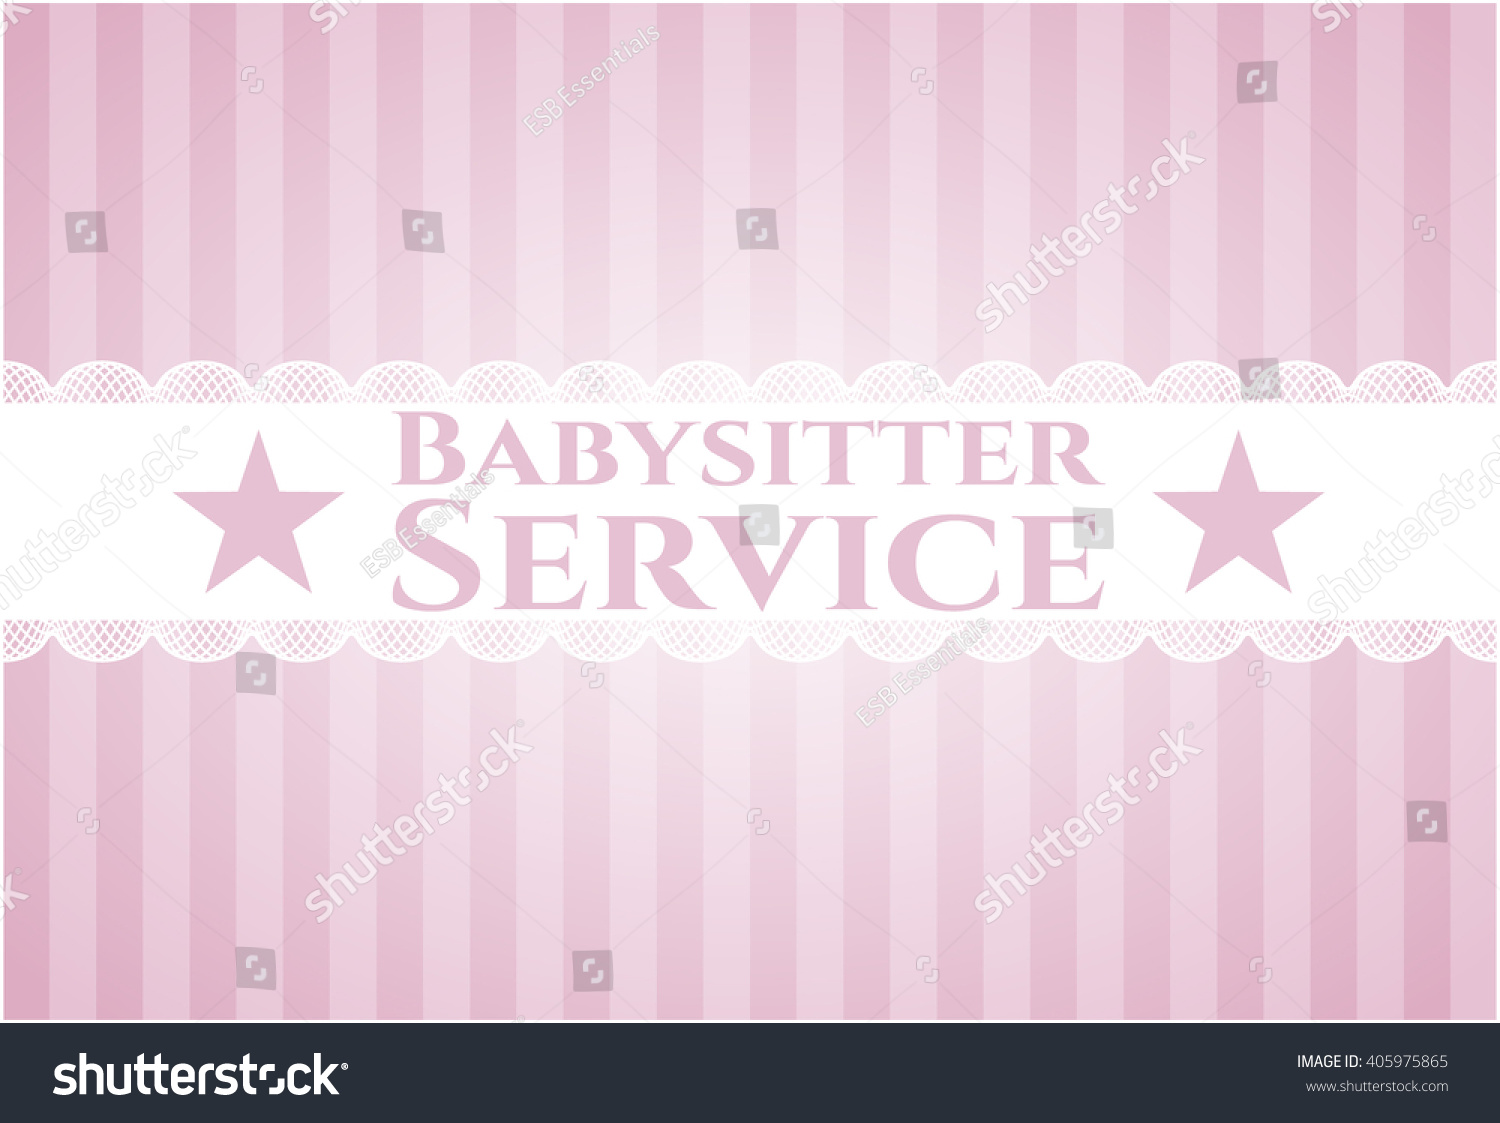 babysitter service poster or banner stock vector illustration save to a lightbox